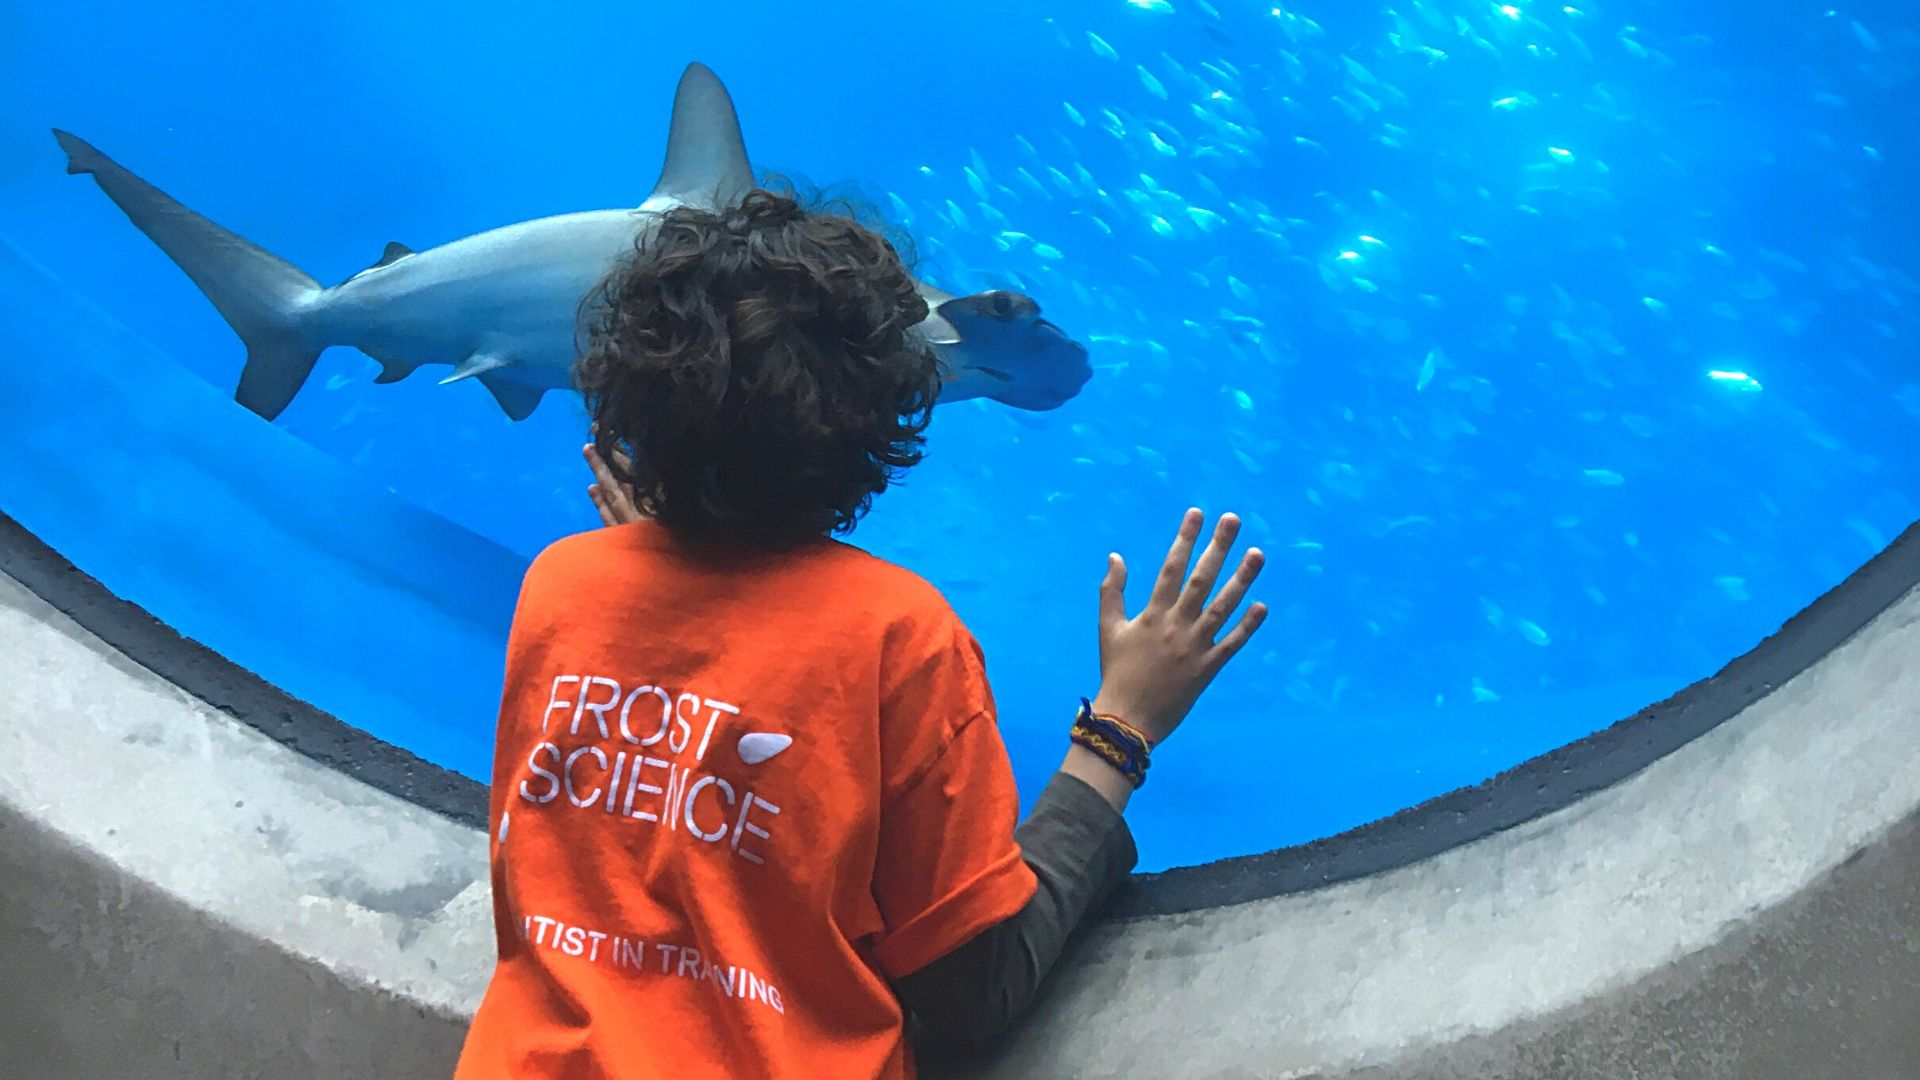 Child looking at shark in Frost Science Gulfstream Aquarium.